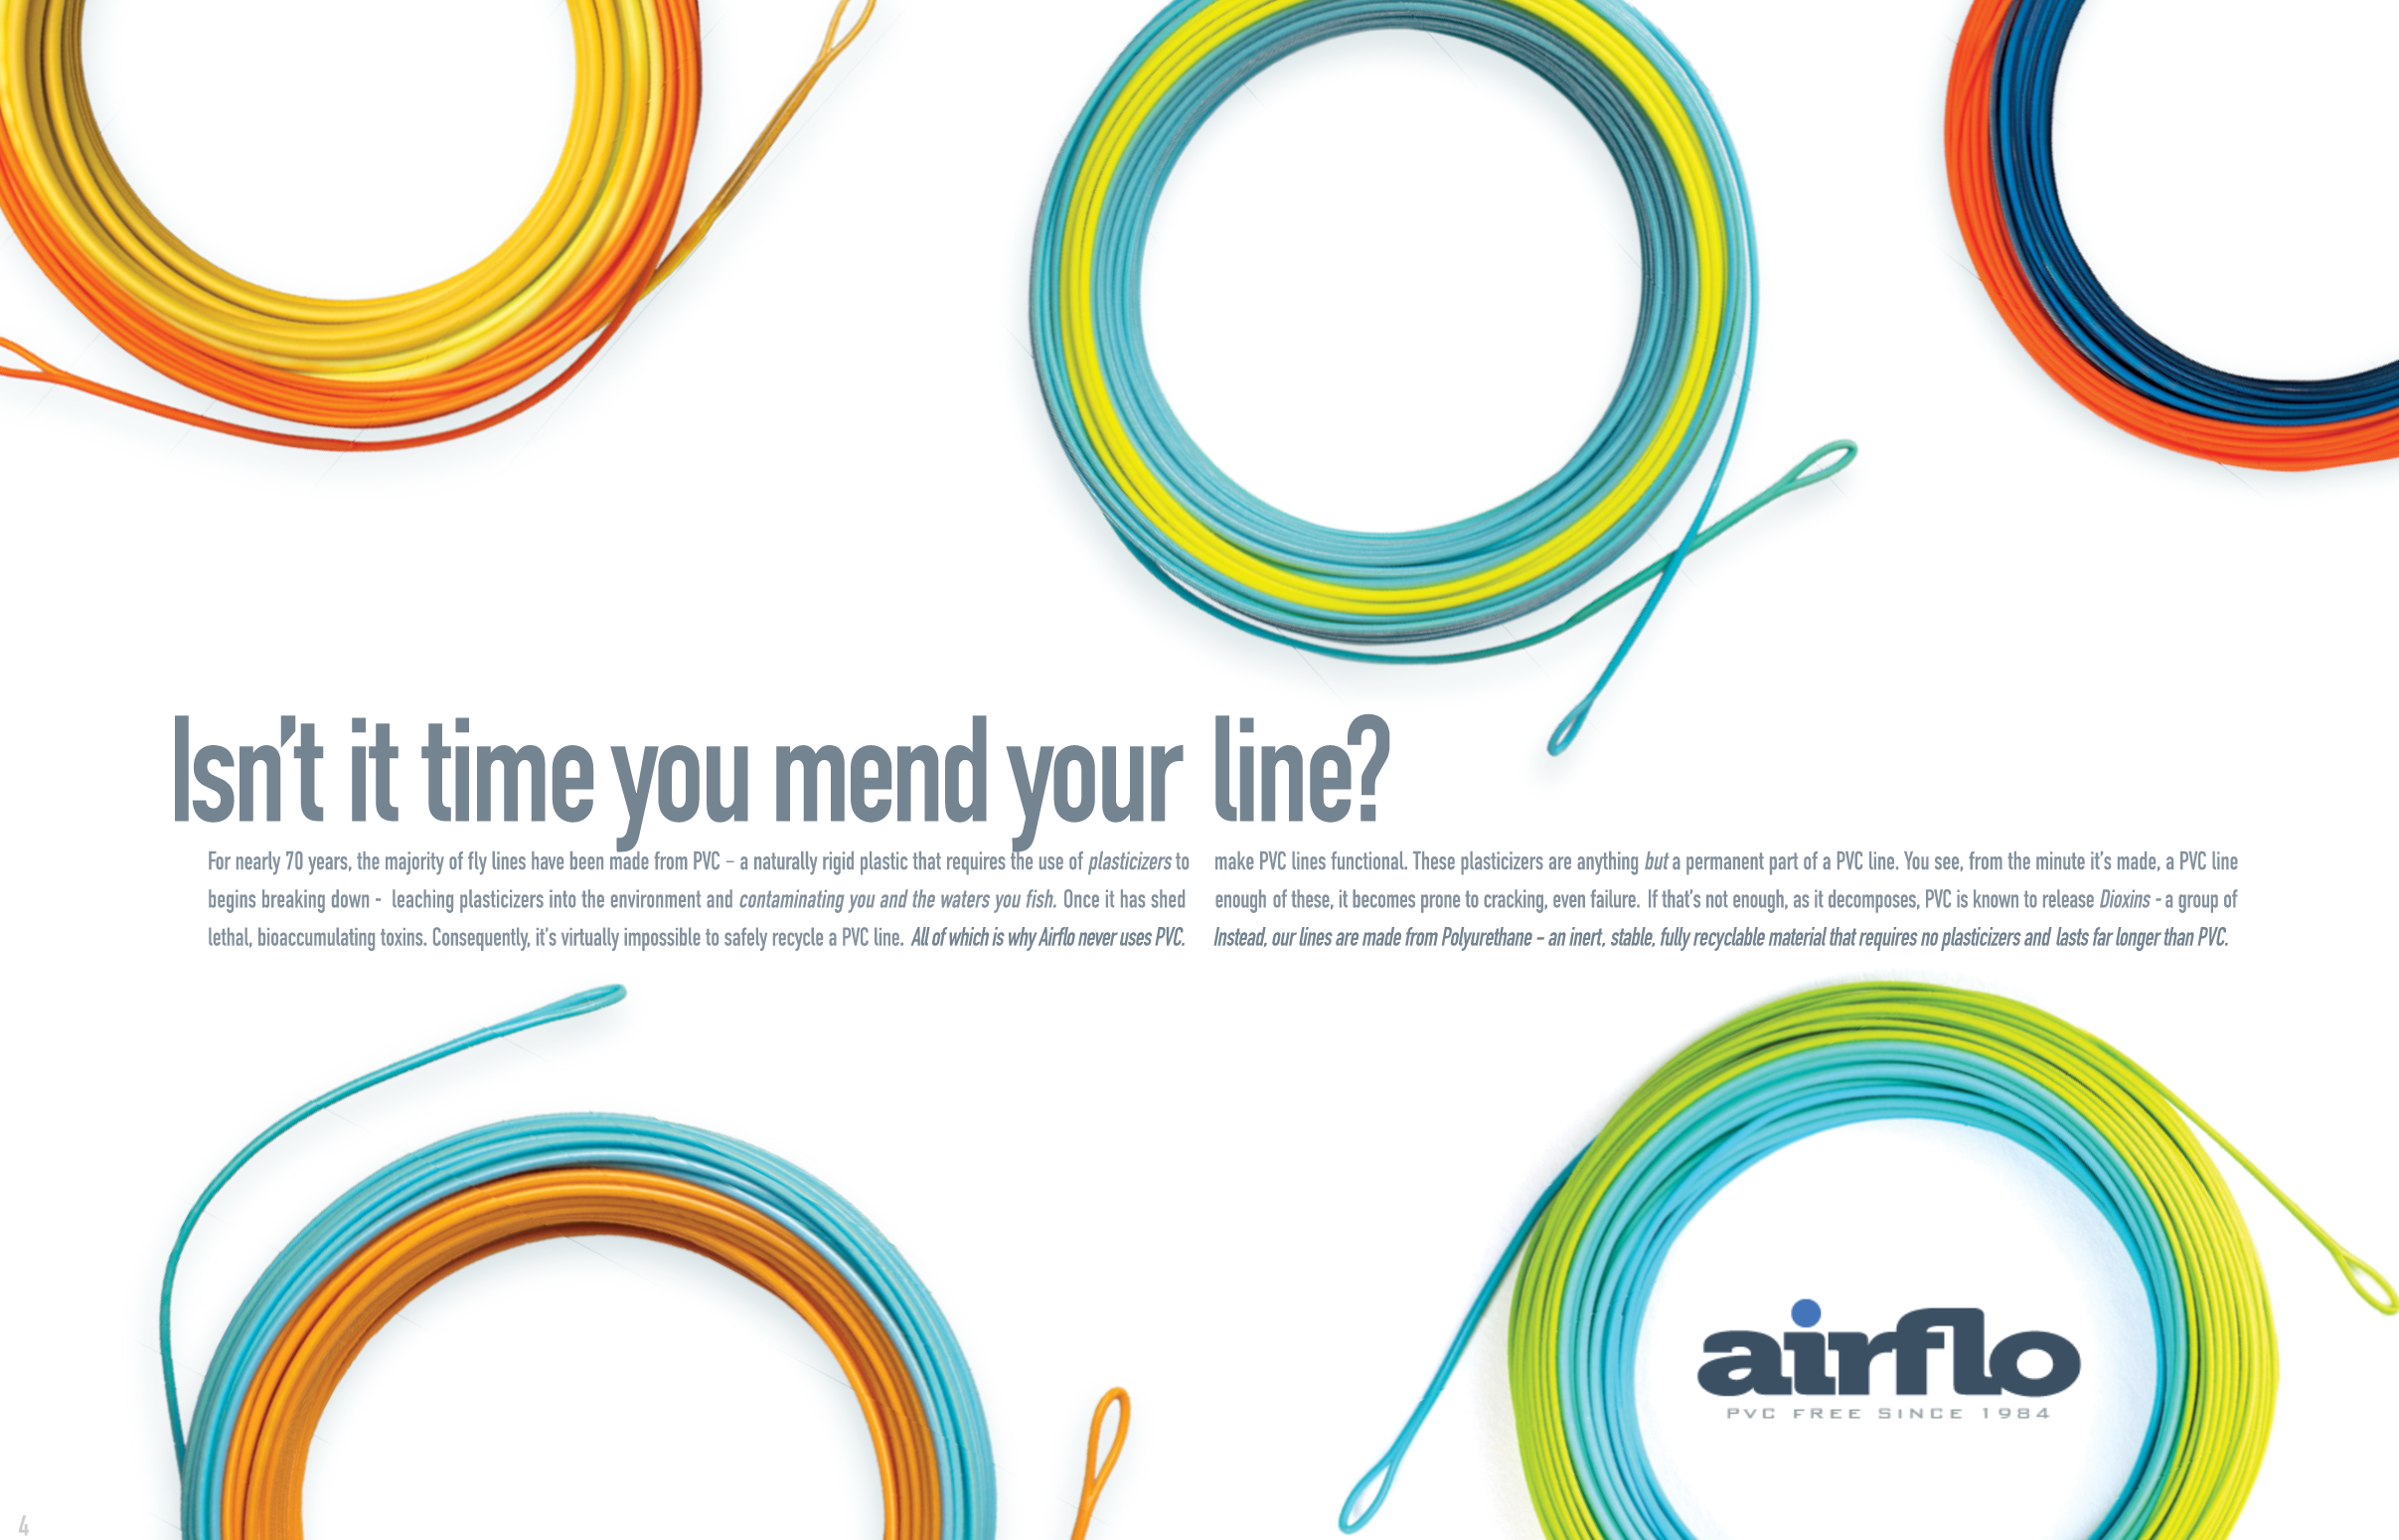 Airflo Universal Taper Fly Line with free polyleader